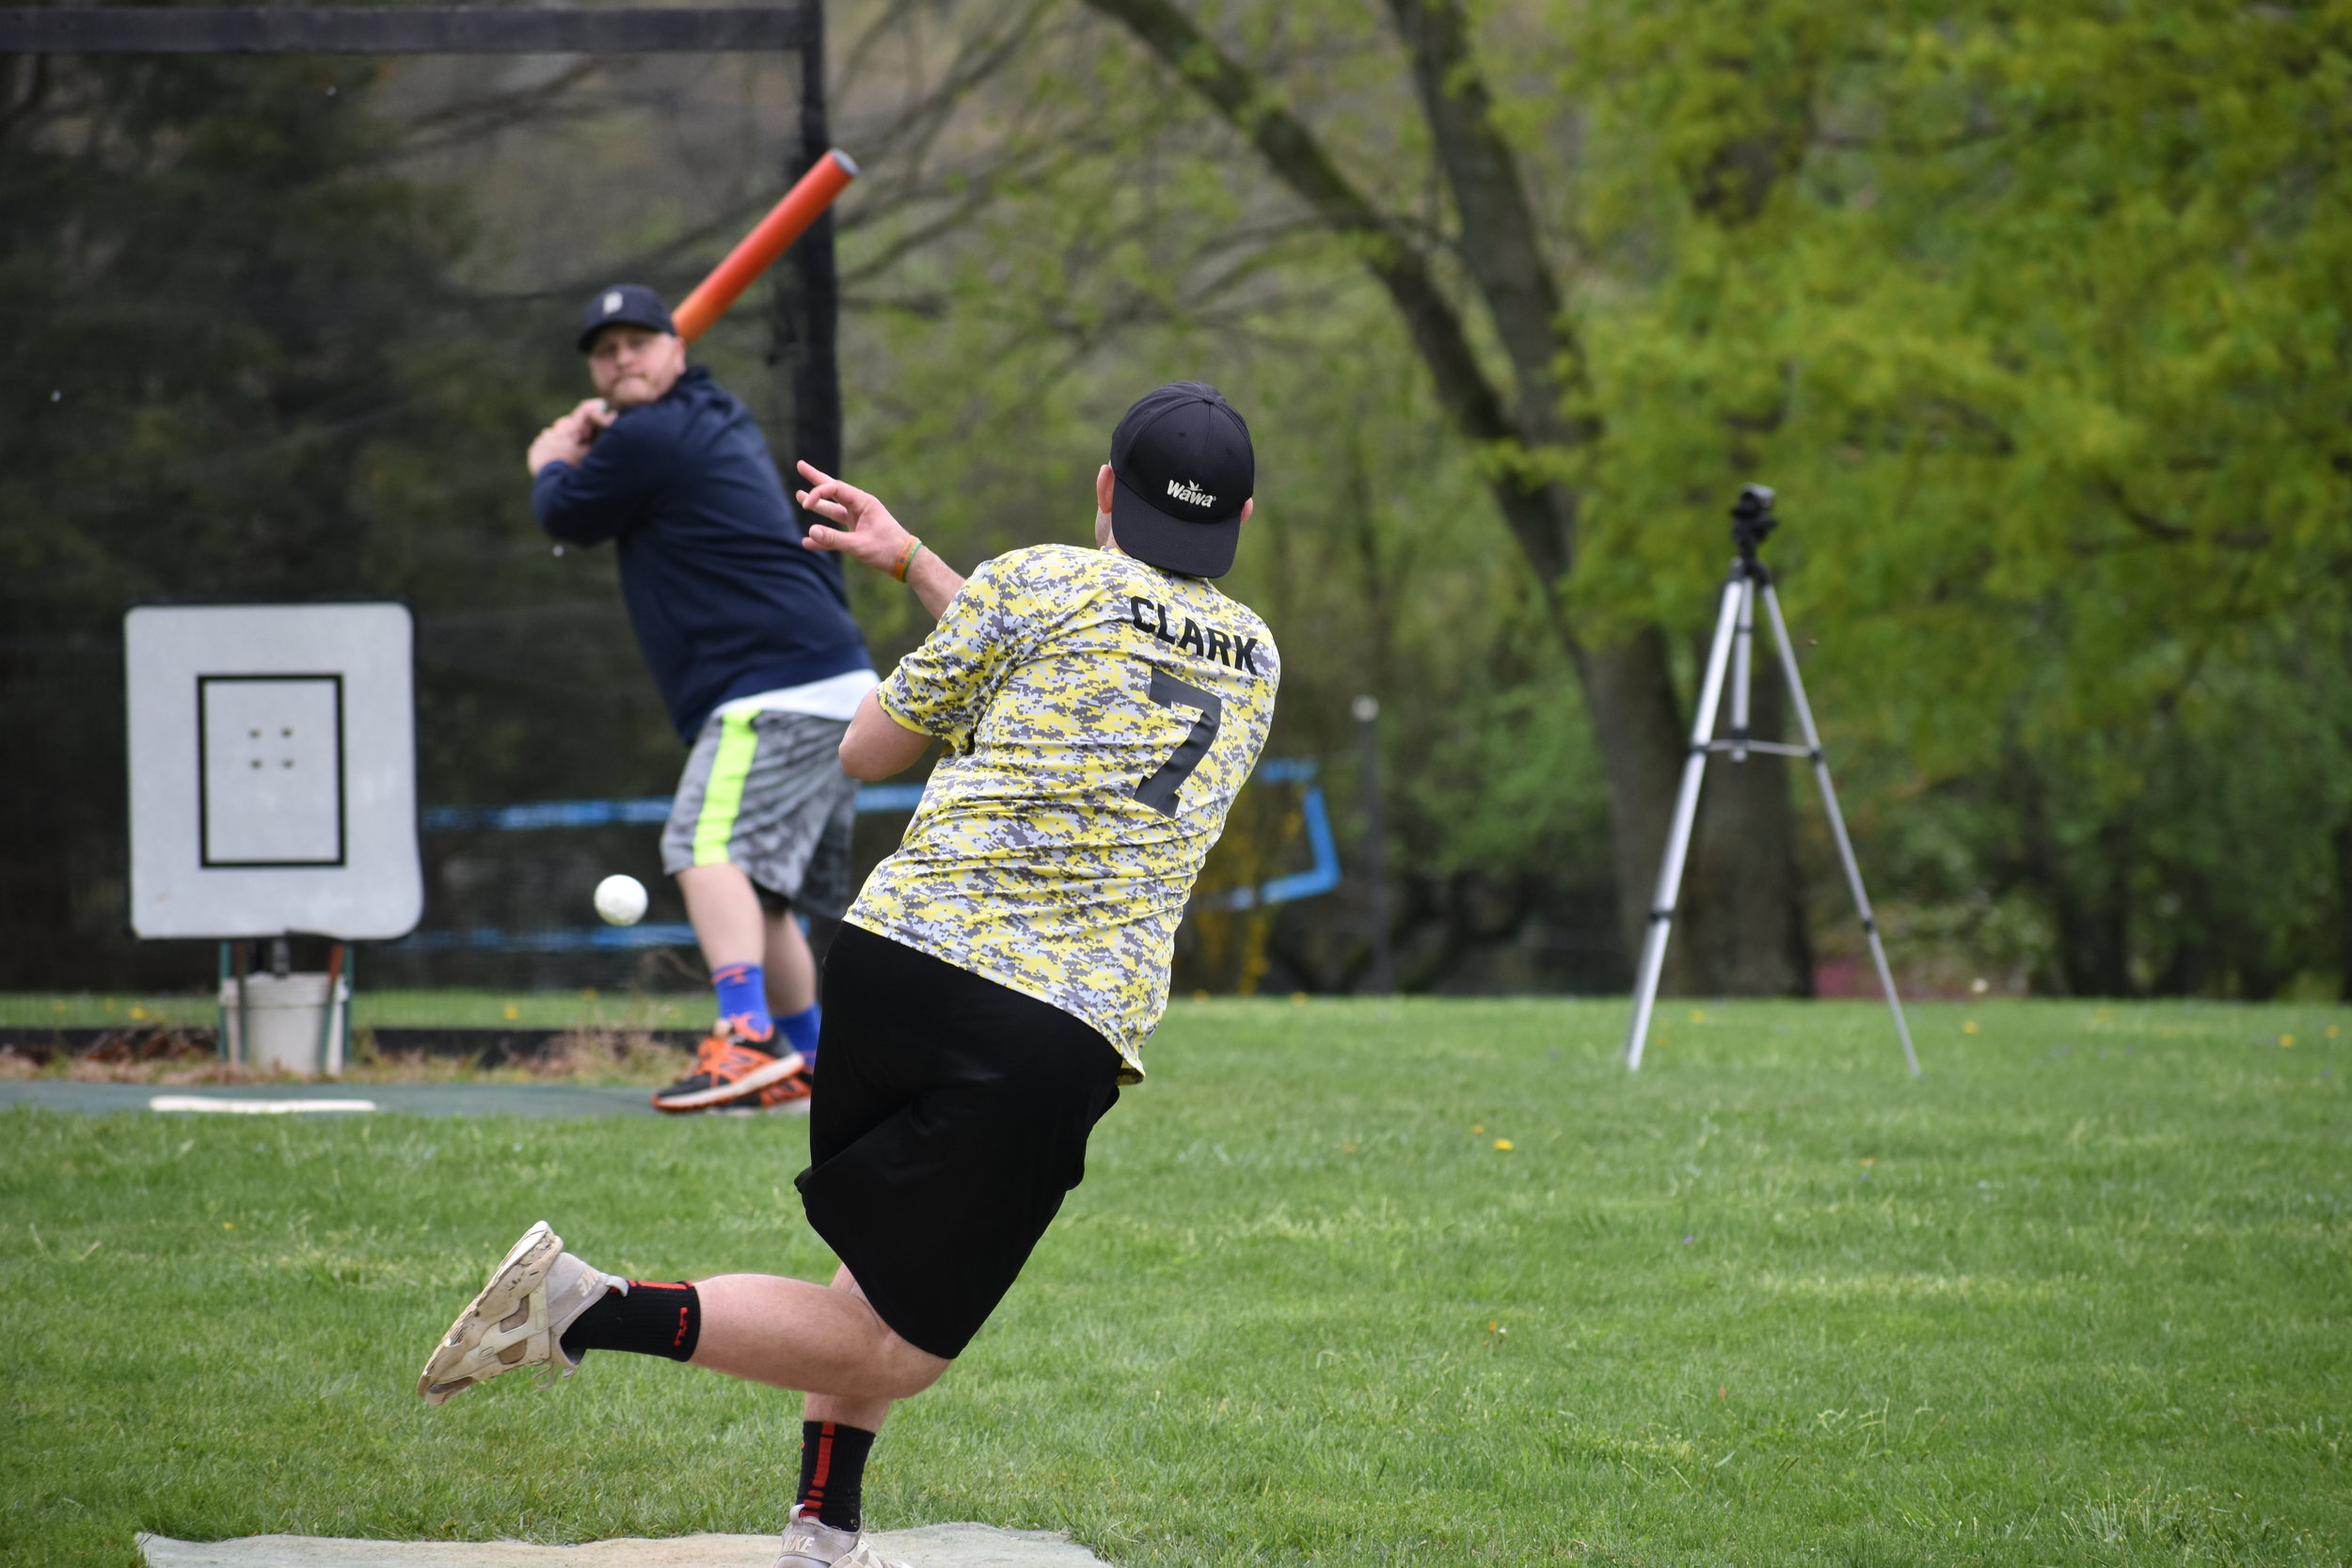 Dave Clark of the Lemon Heads delivers a pitch to Jared Laird. In conjunction with the Lemon Heads, MAW comes to Jackson, NJ on May 18th for the second tournament of the season. (April 20, 2019)